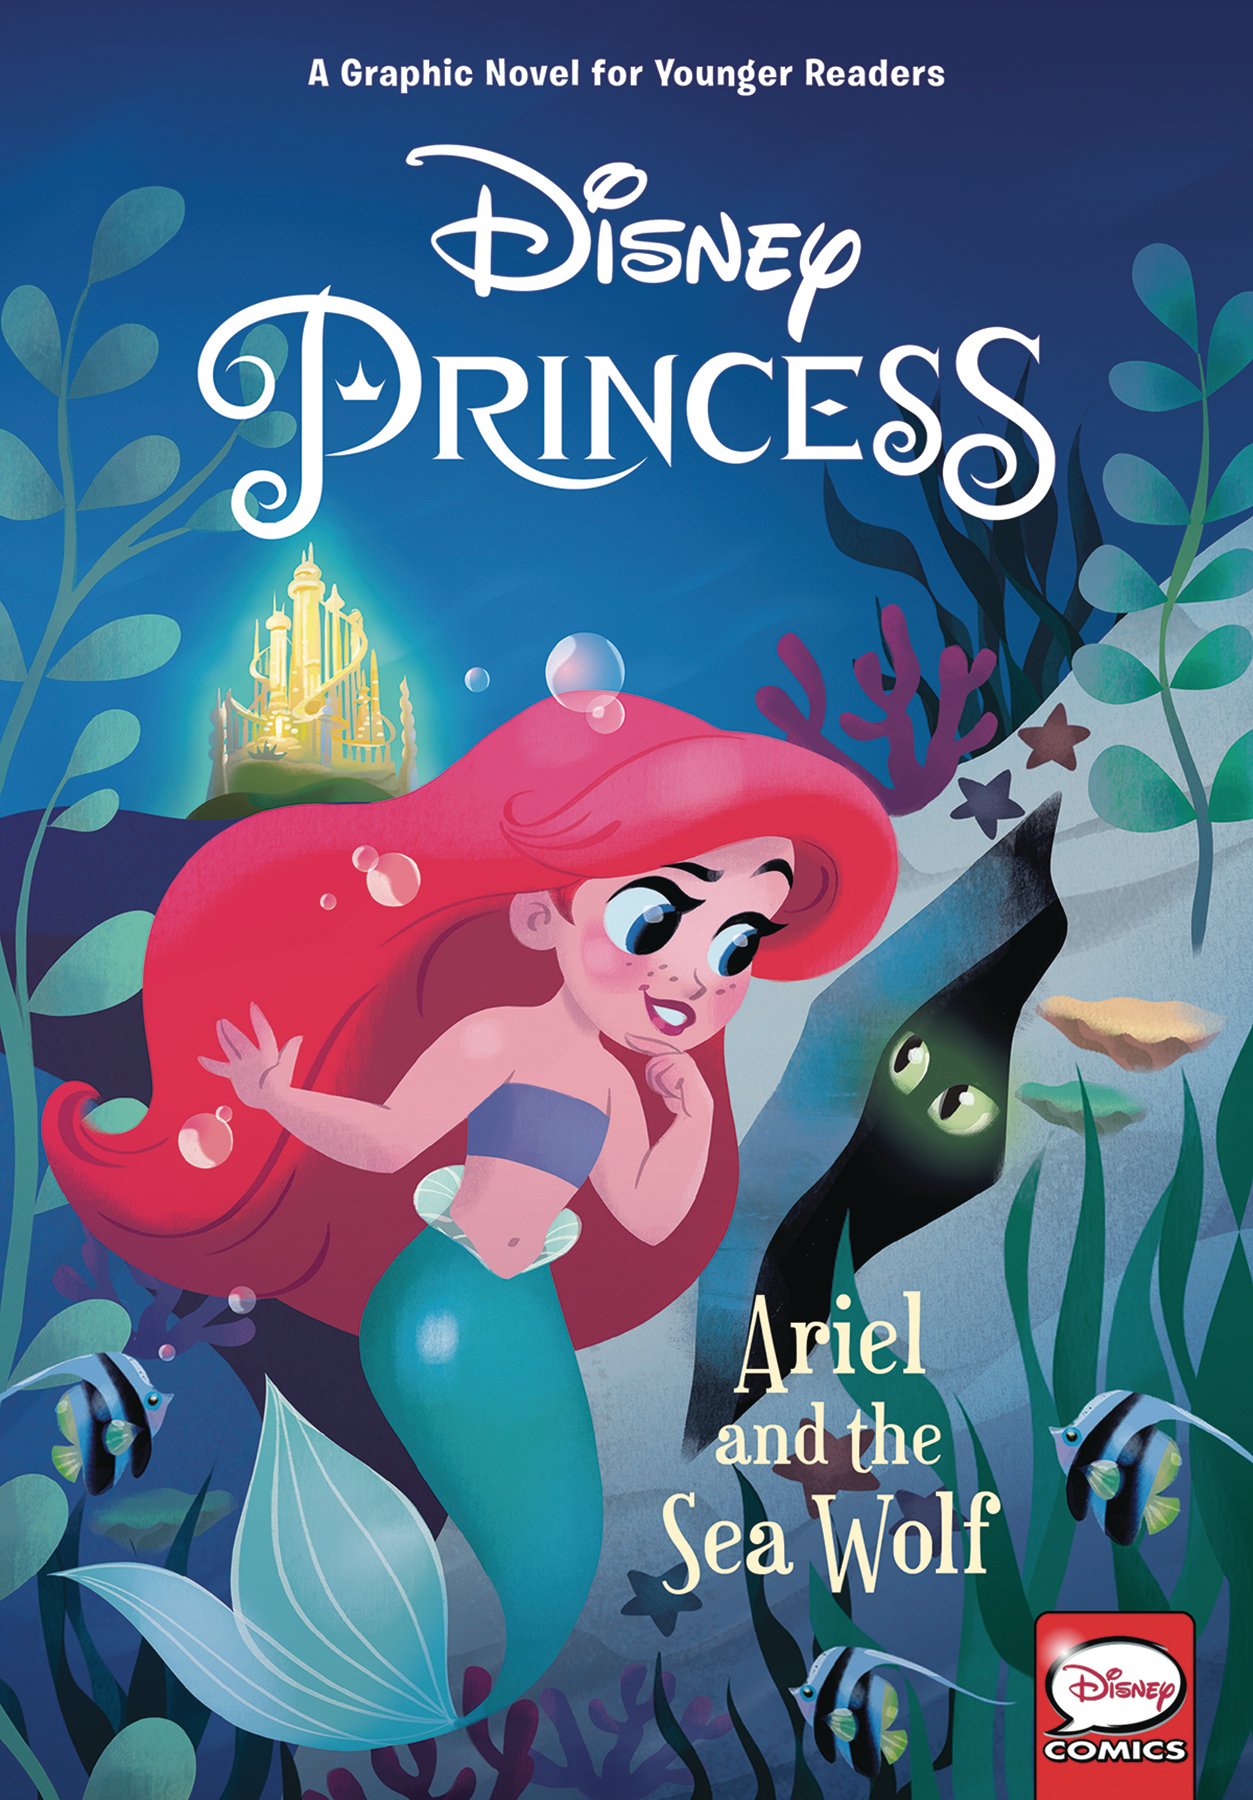 DISNEY PRINCESS HC ARIEL AND SEA WOLF (YOUNG READERS)